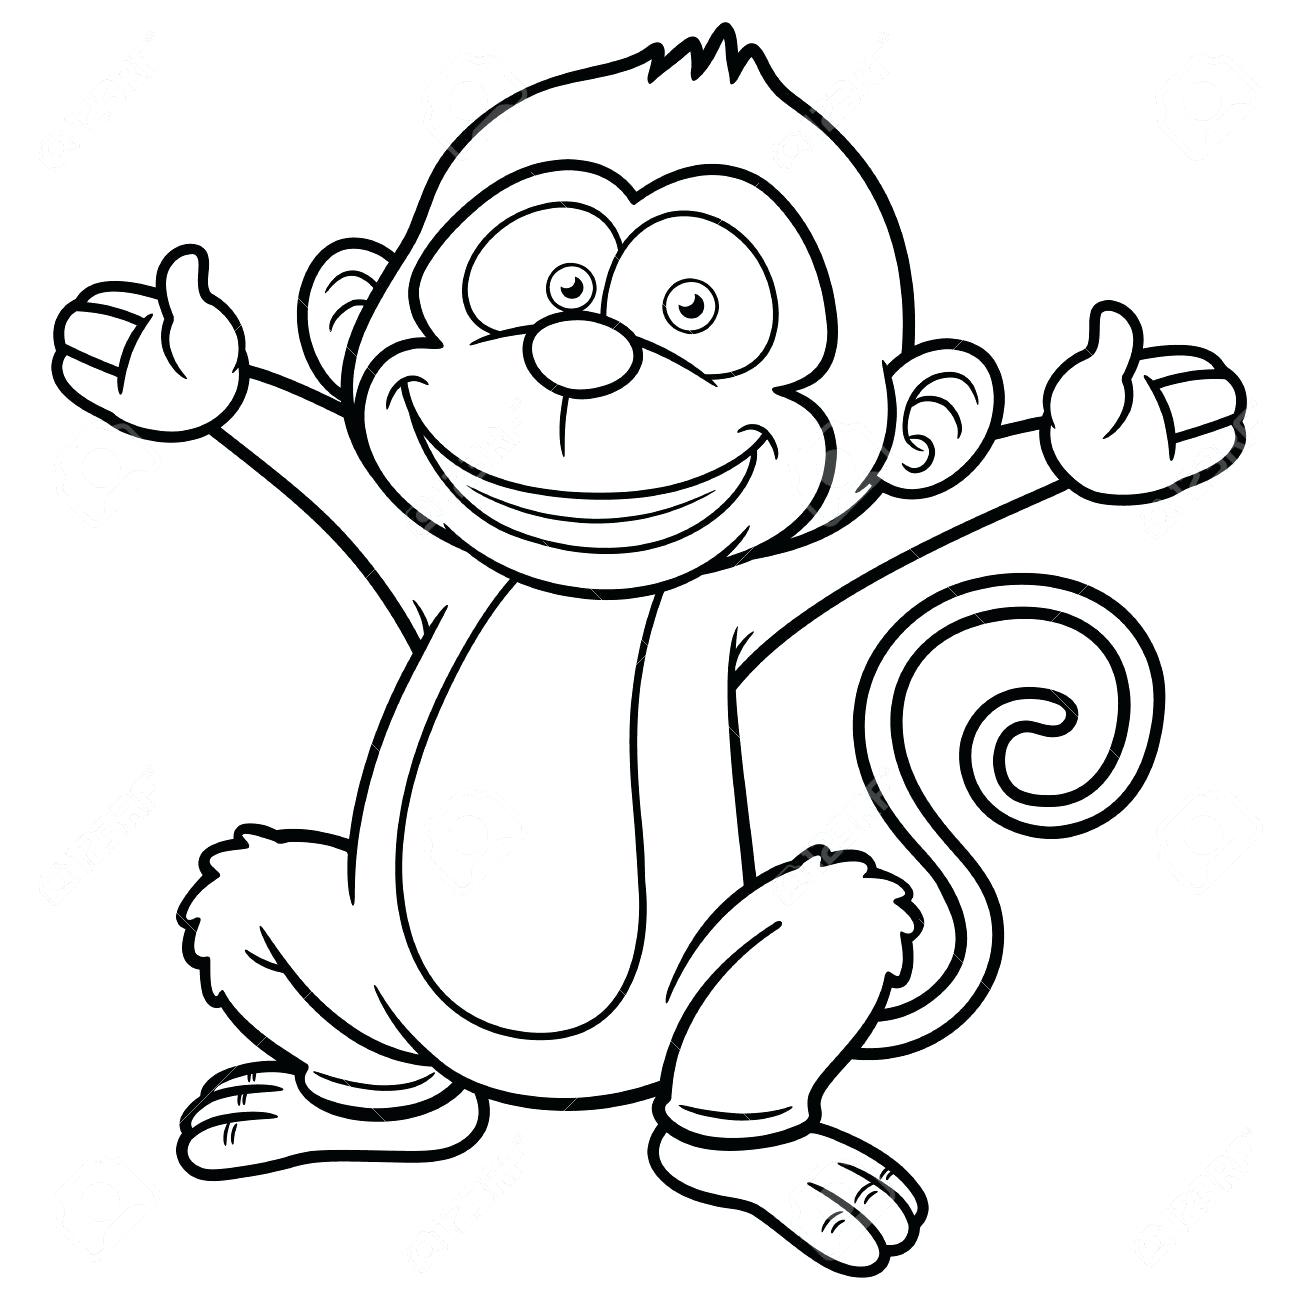 Monkey Line Drawing at GetDrawings.com | Free for personal use ...